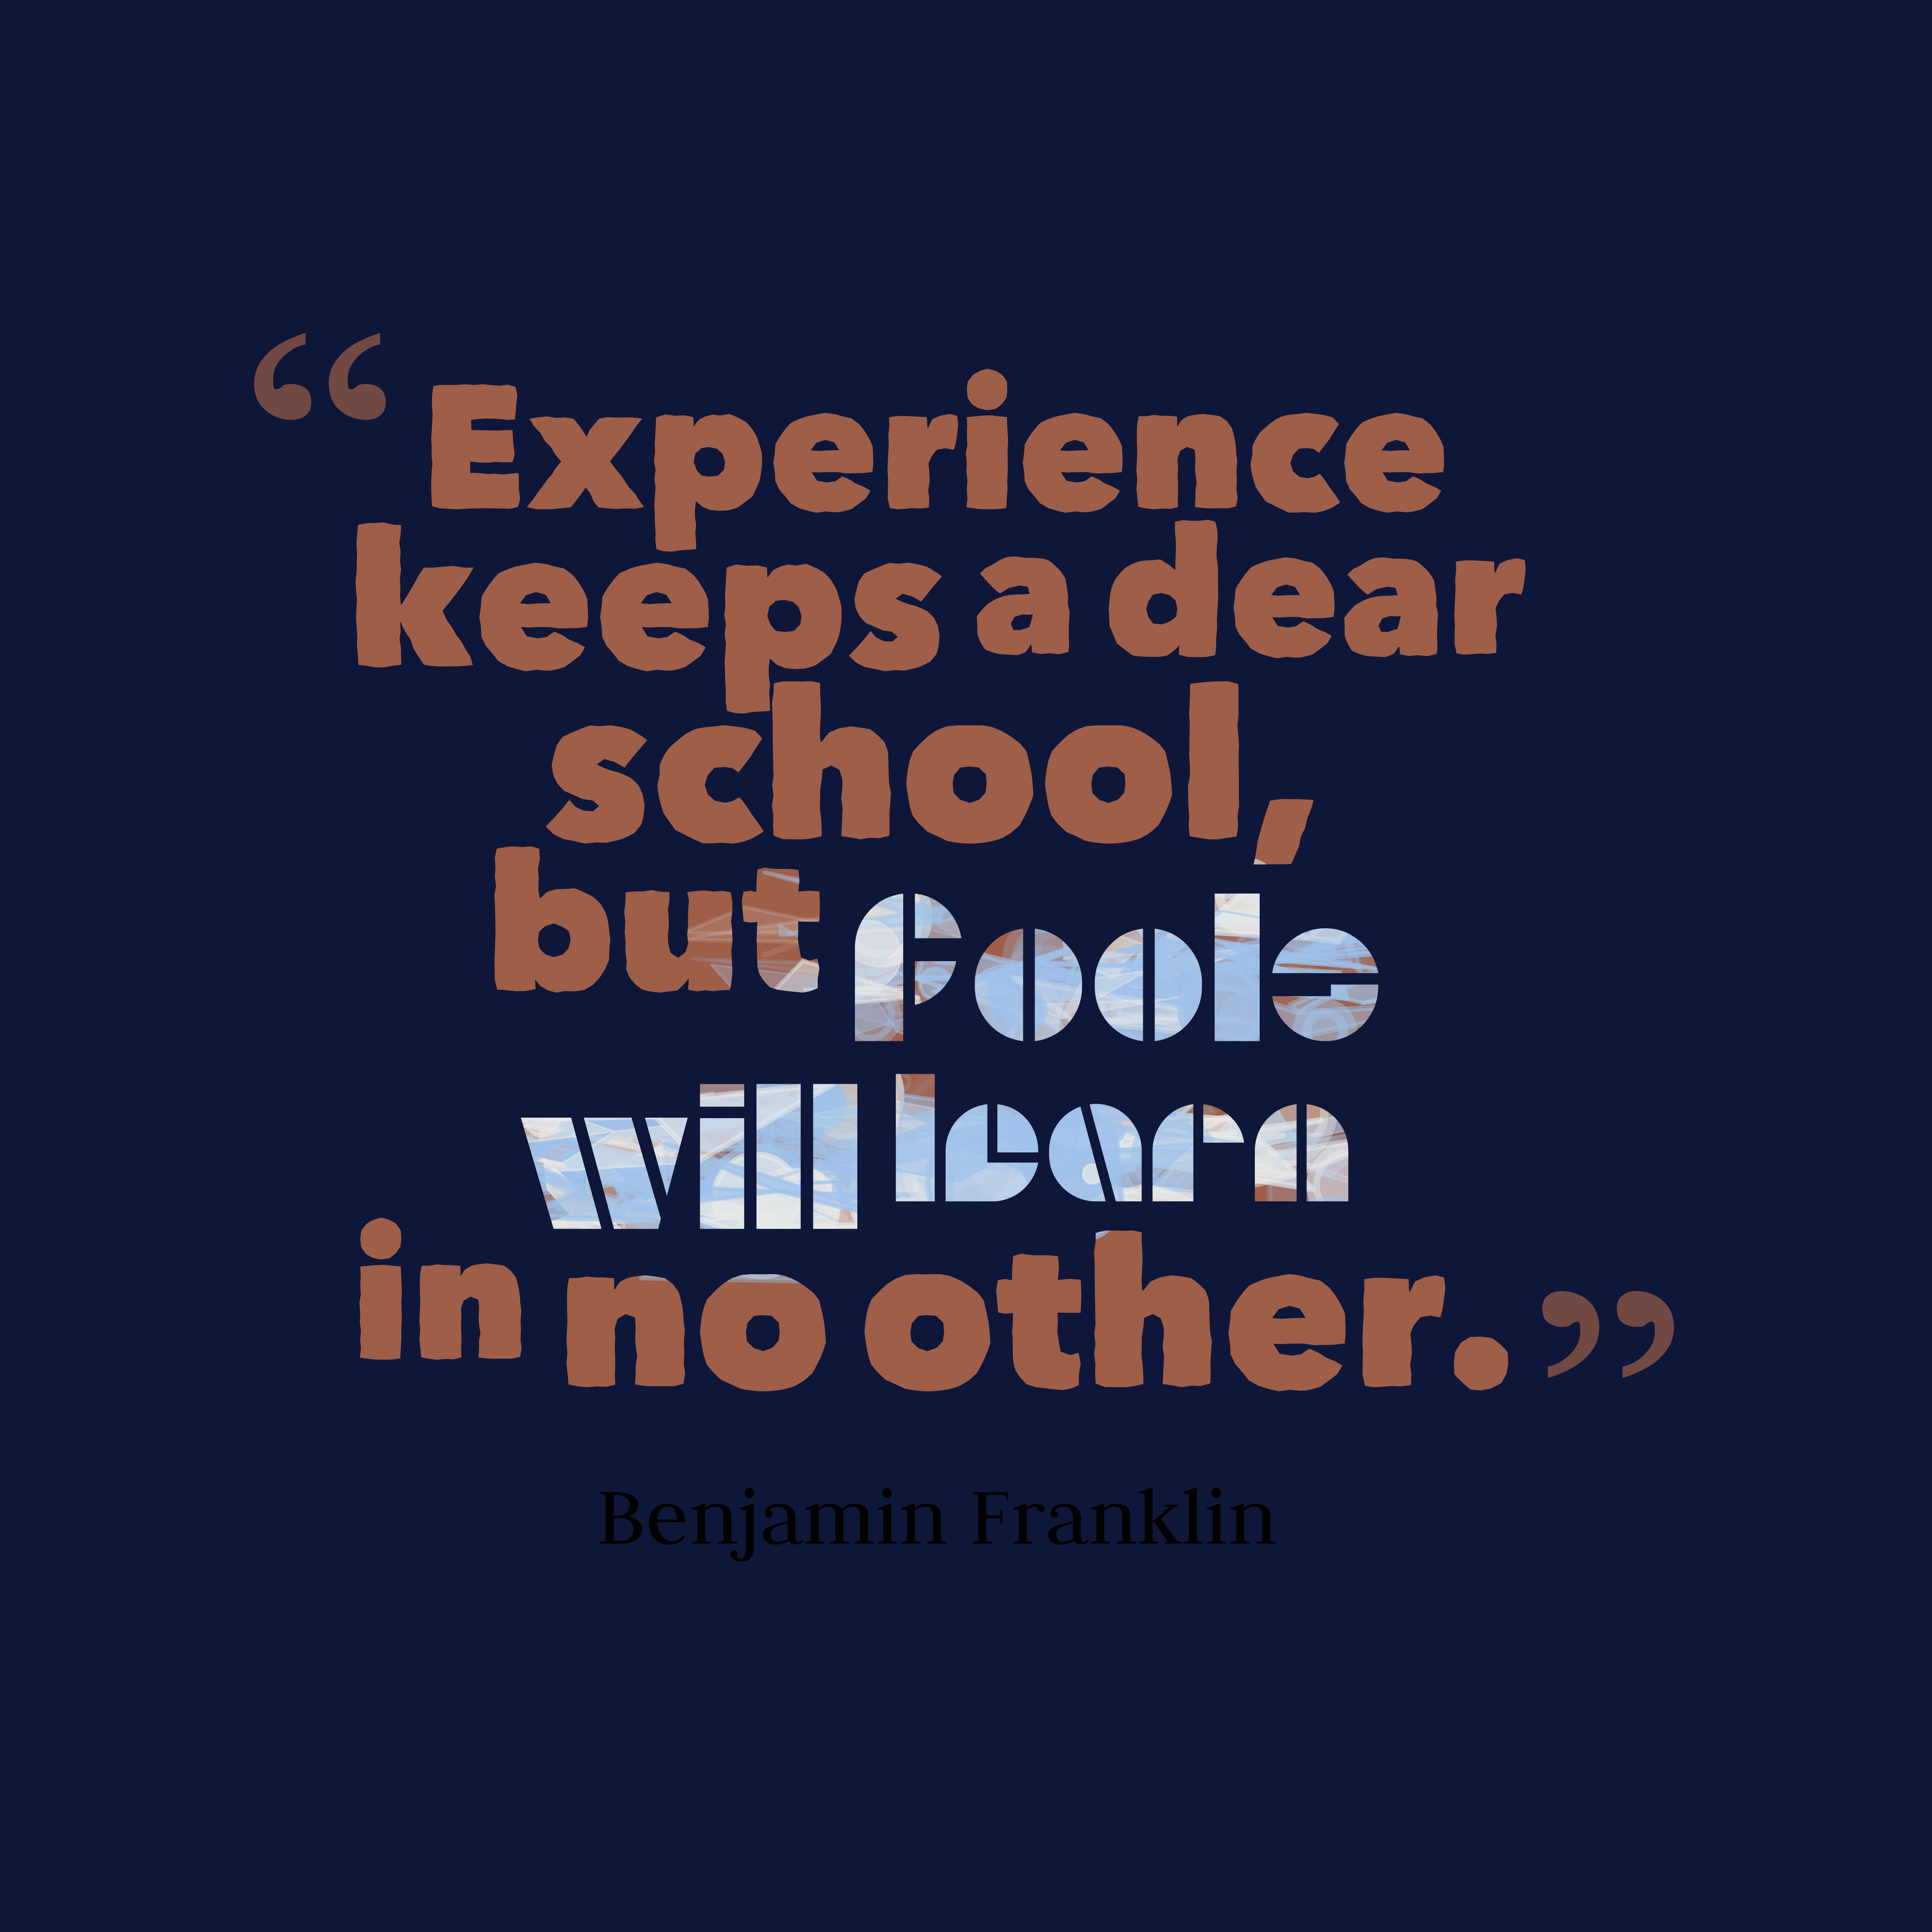 Quotes image of Experience keeps a dear school, but fools will learn in no other.